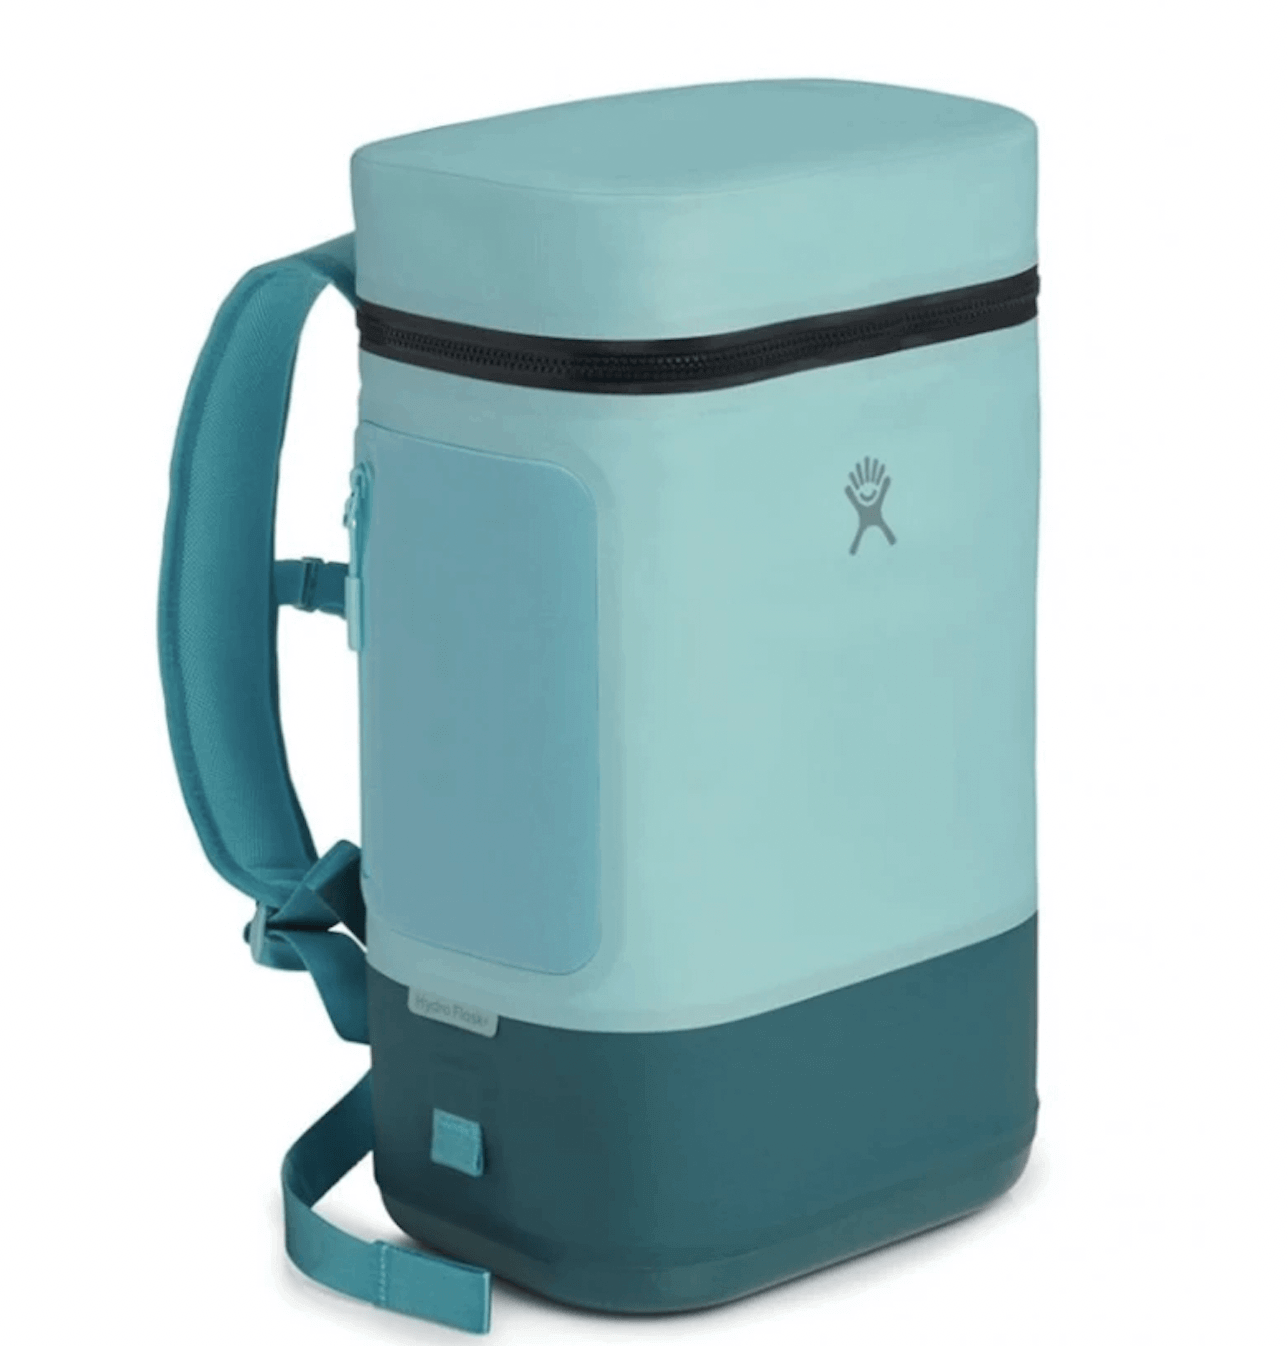 Southern FINDS March: Hydro Flask Soft Cooler Pack from Pants Store